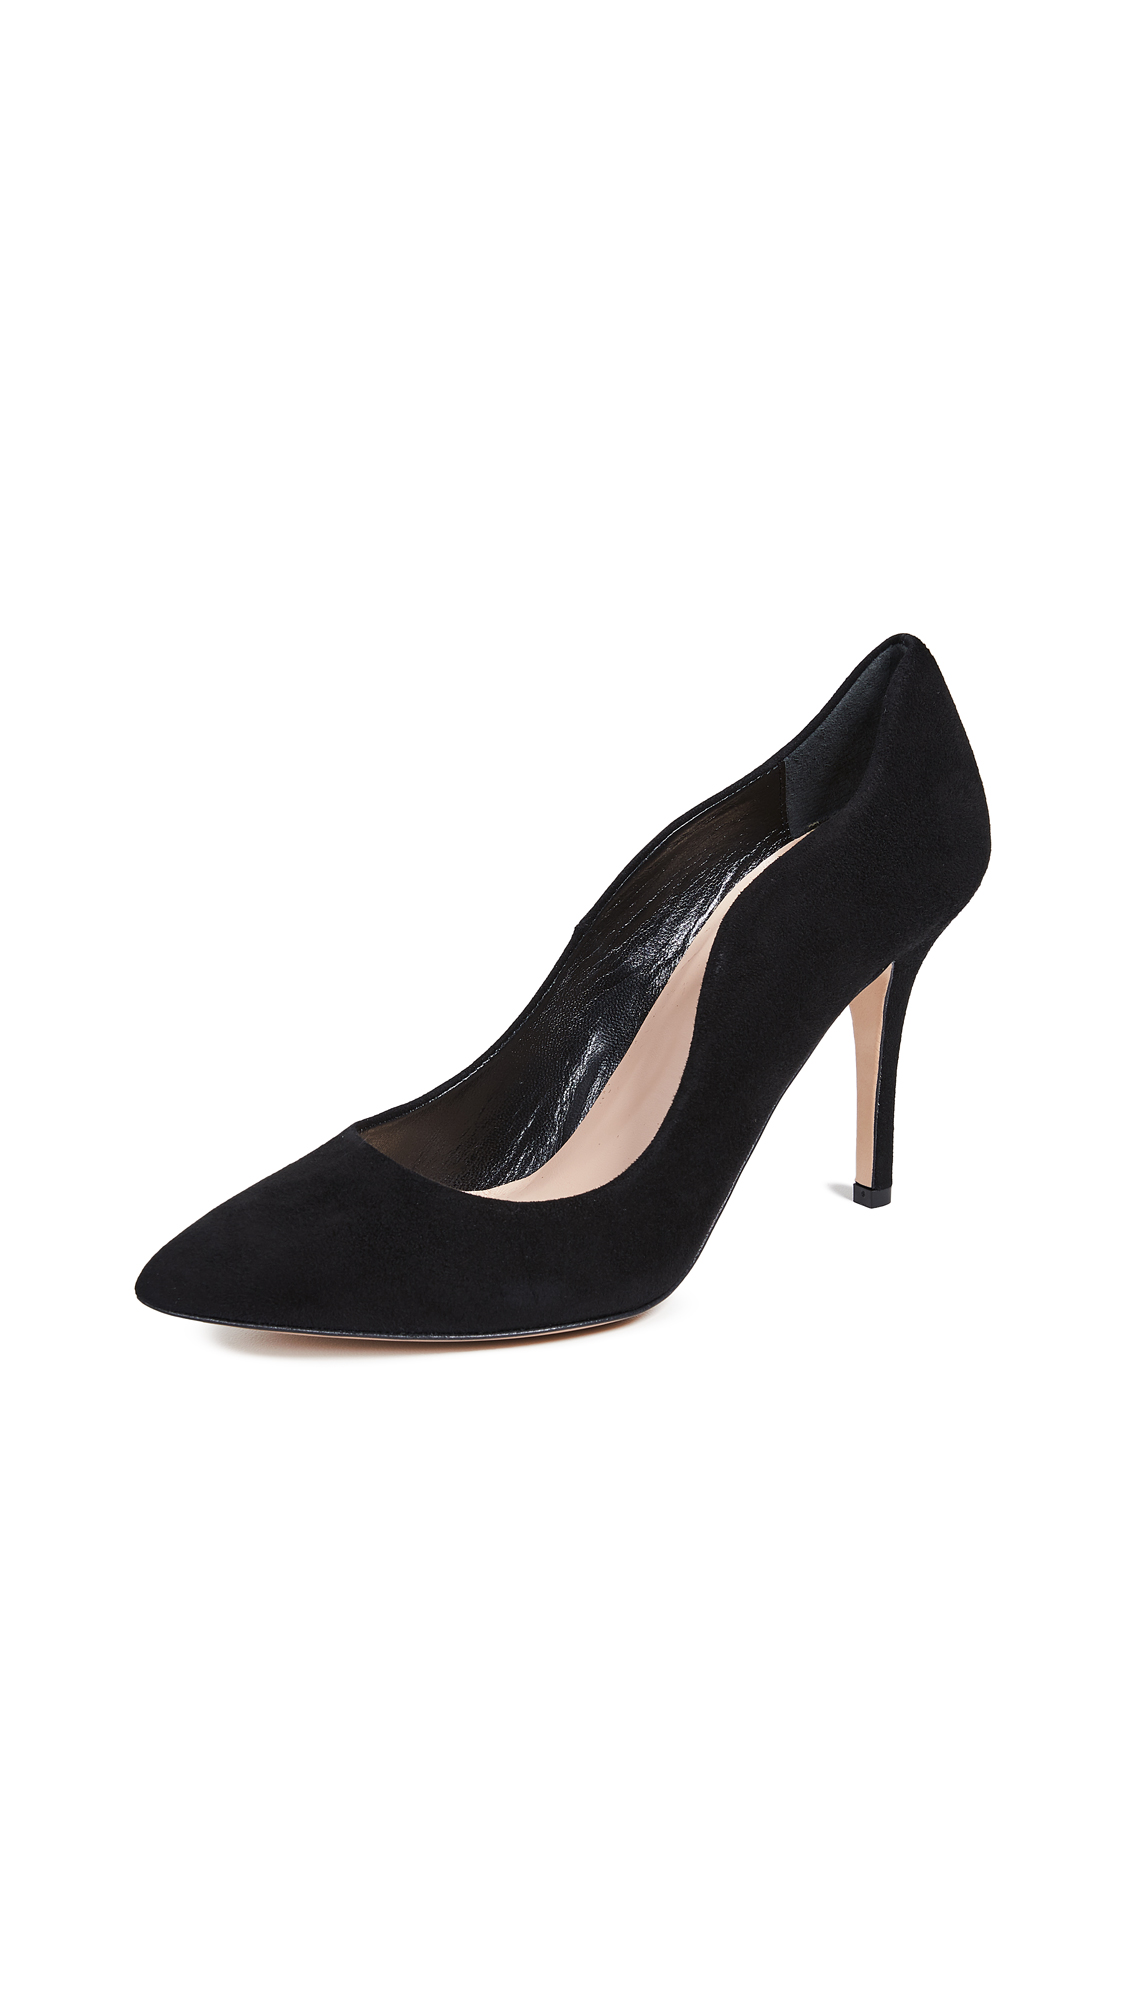 Club Monaco Eveleen Suede Pumps - Black